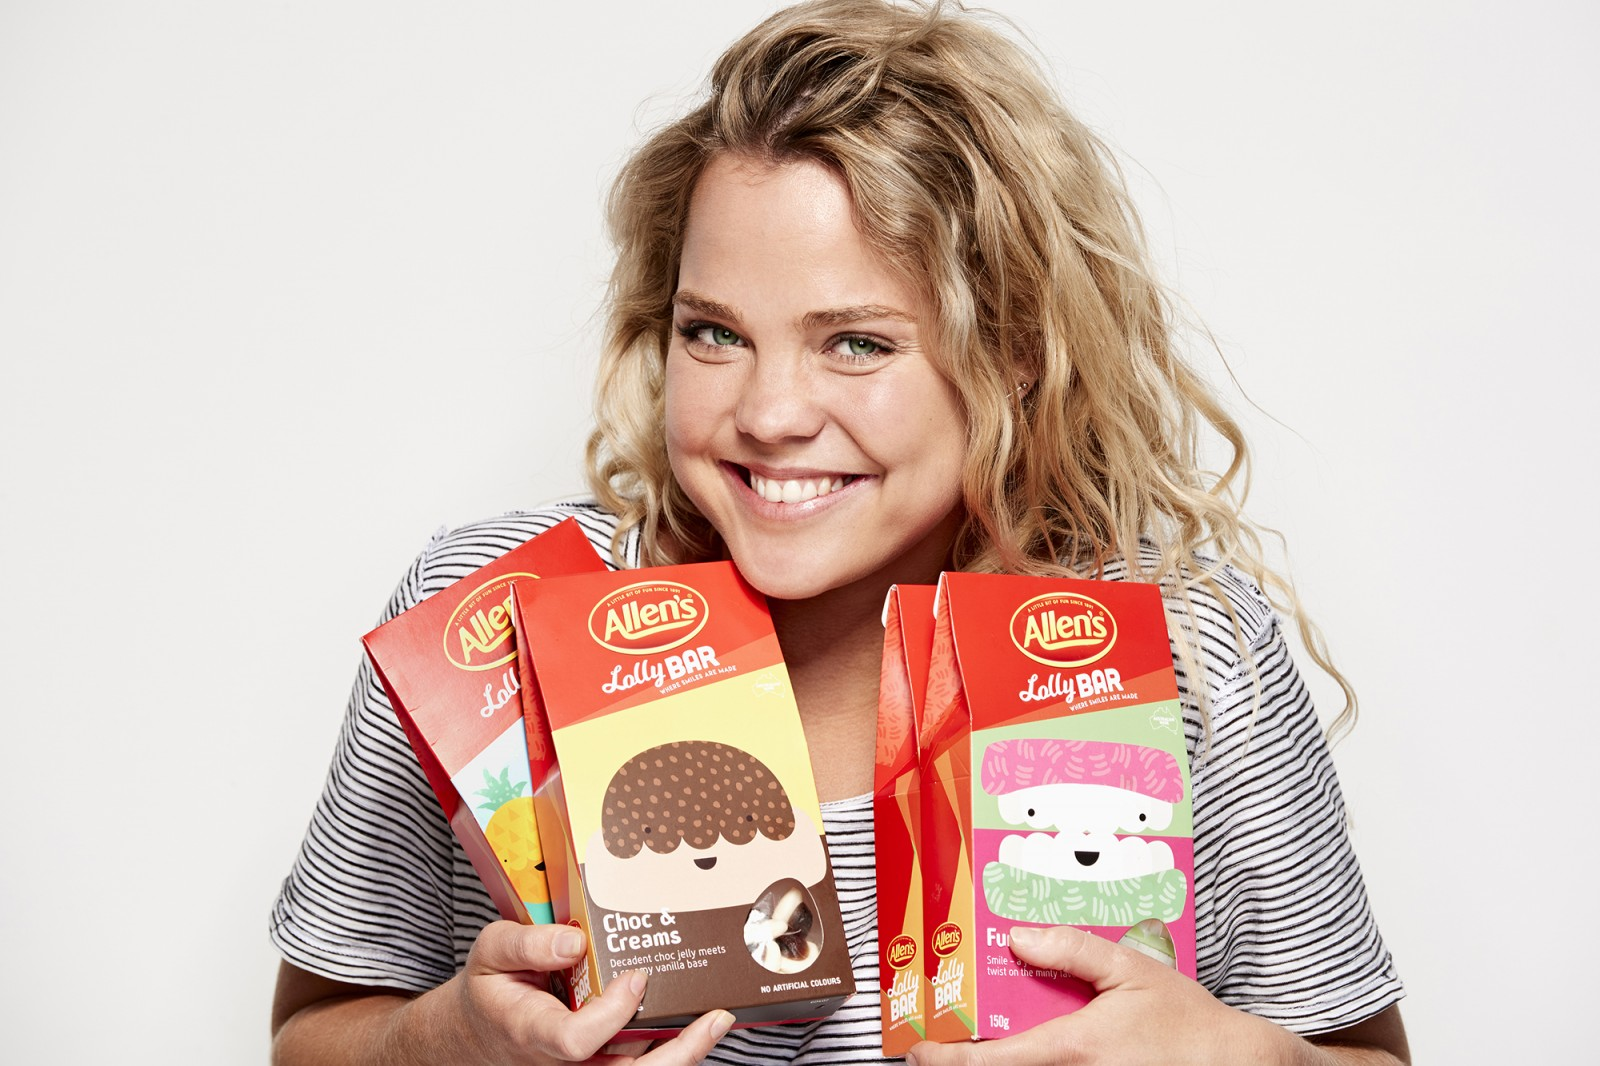 Michelle Young photographs talent for Allens Lolly Bar exclusive for the Westfields Sydney city store, just in time for christmas. Michelle Young is Sydneys leading photographer specialising in...